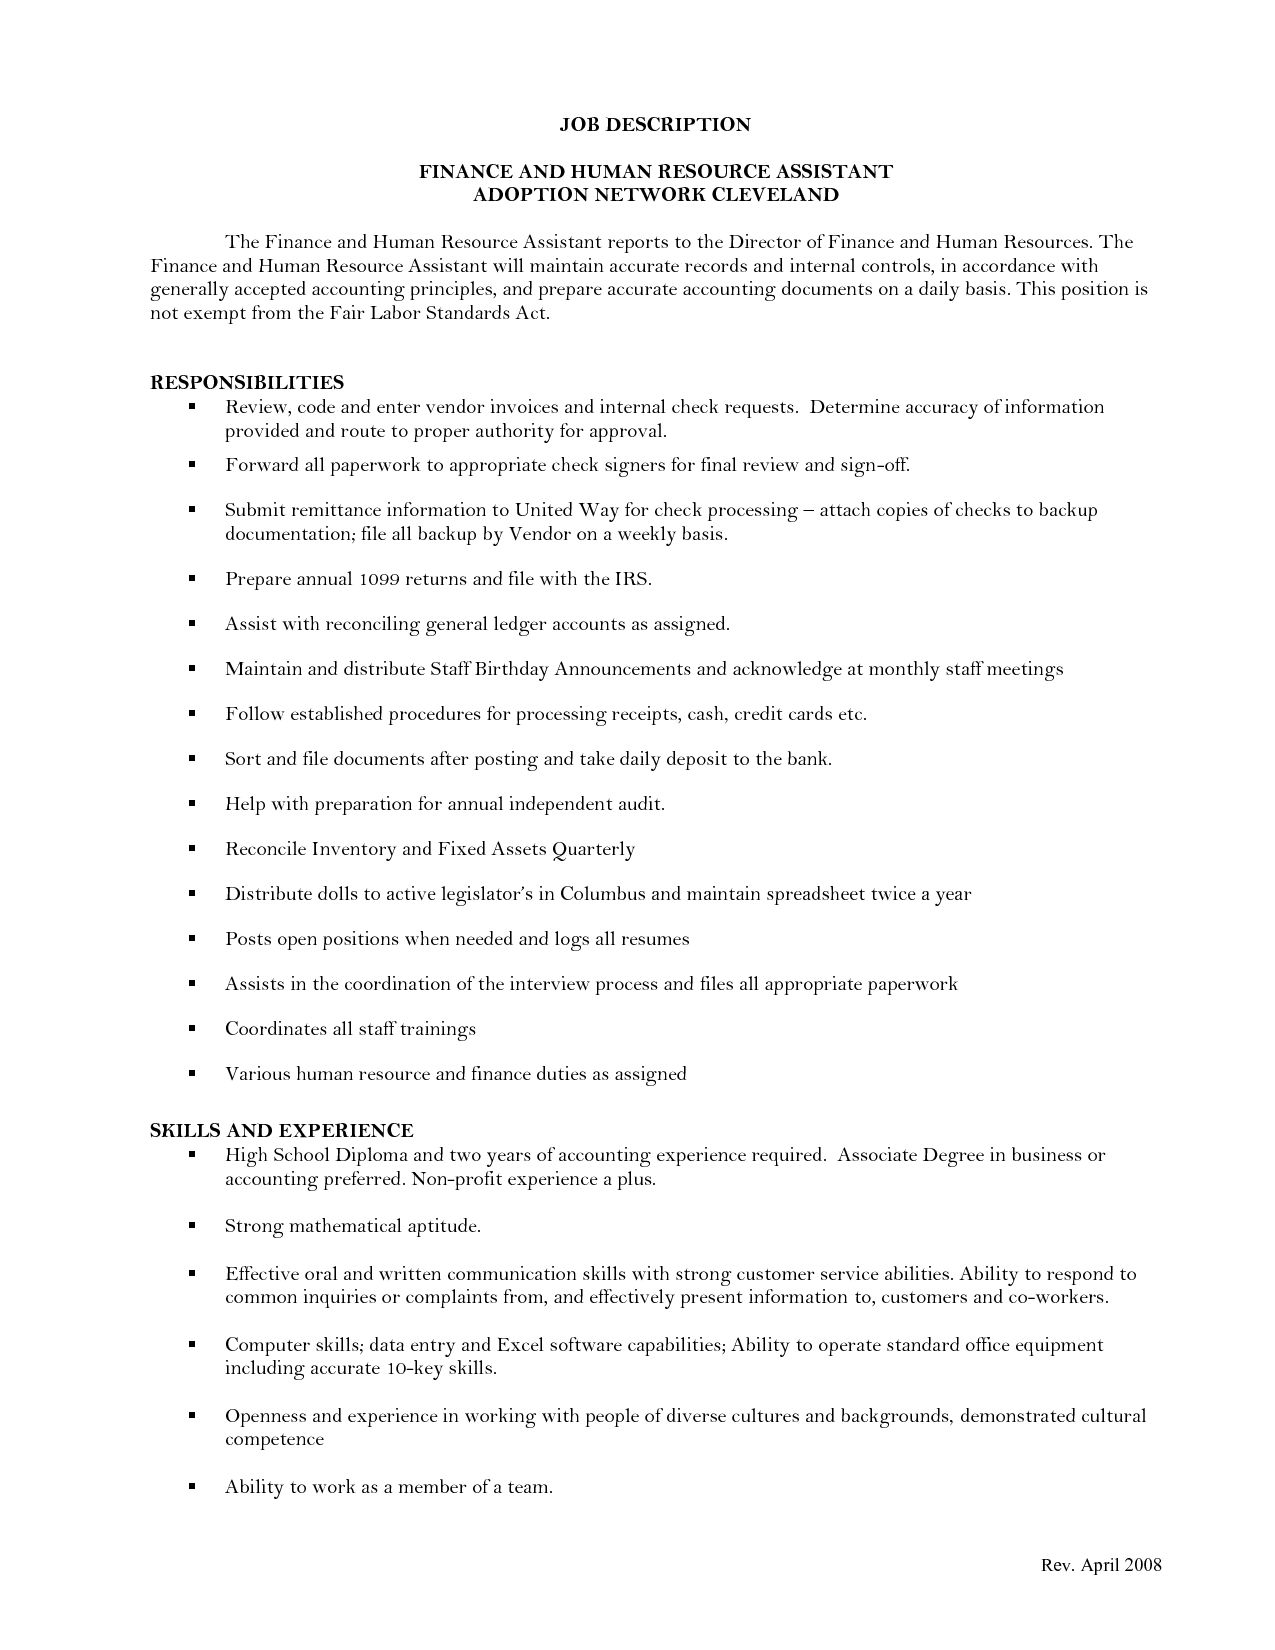 Here some writing tips and examples of human resources